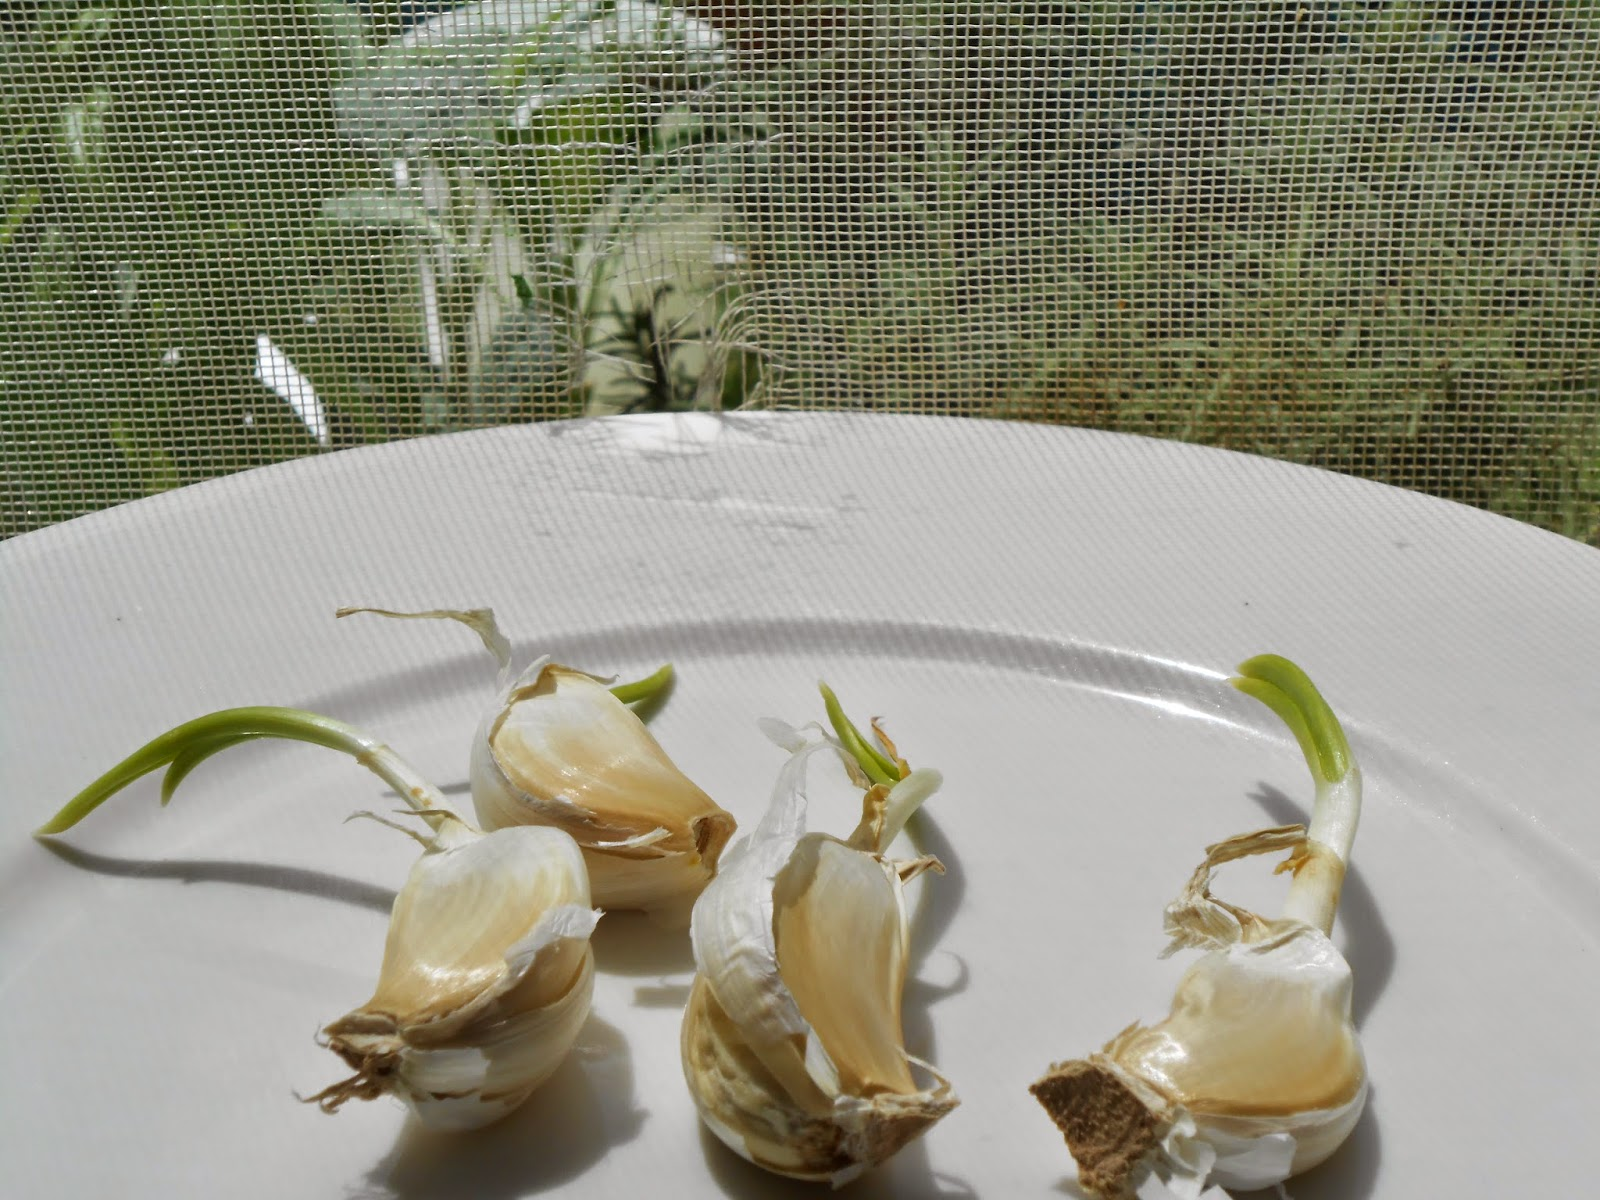 GARLIC: Regrow greens and vegetables from kitchen scraps